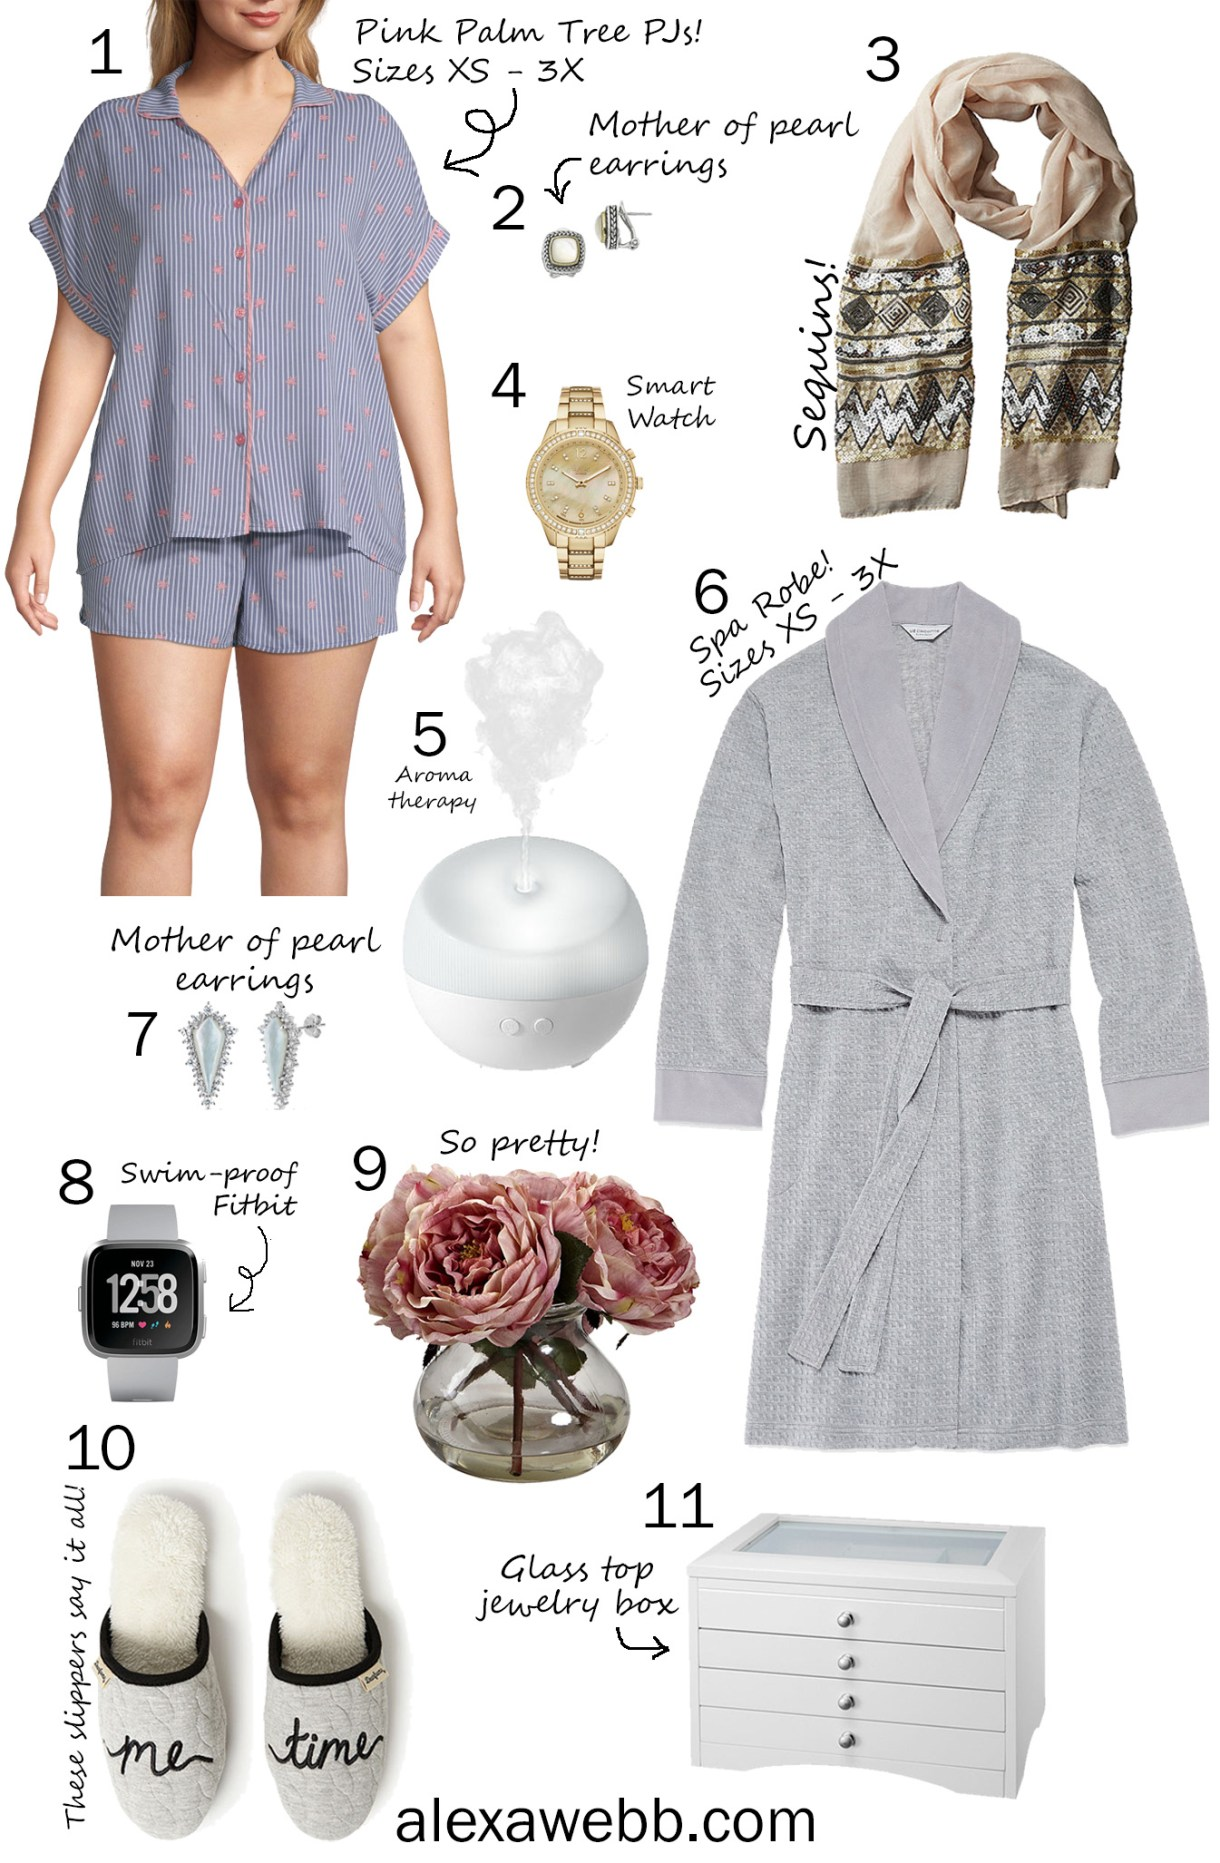 Mother's Day Gift Guide - Sleepwear in Sizes XS - 3X - Gift Ideas for Moms - alexawebb.com #alexawebb